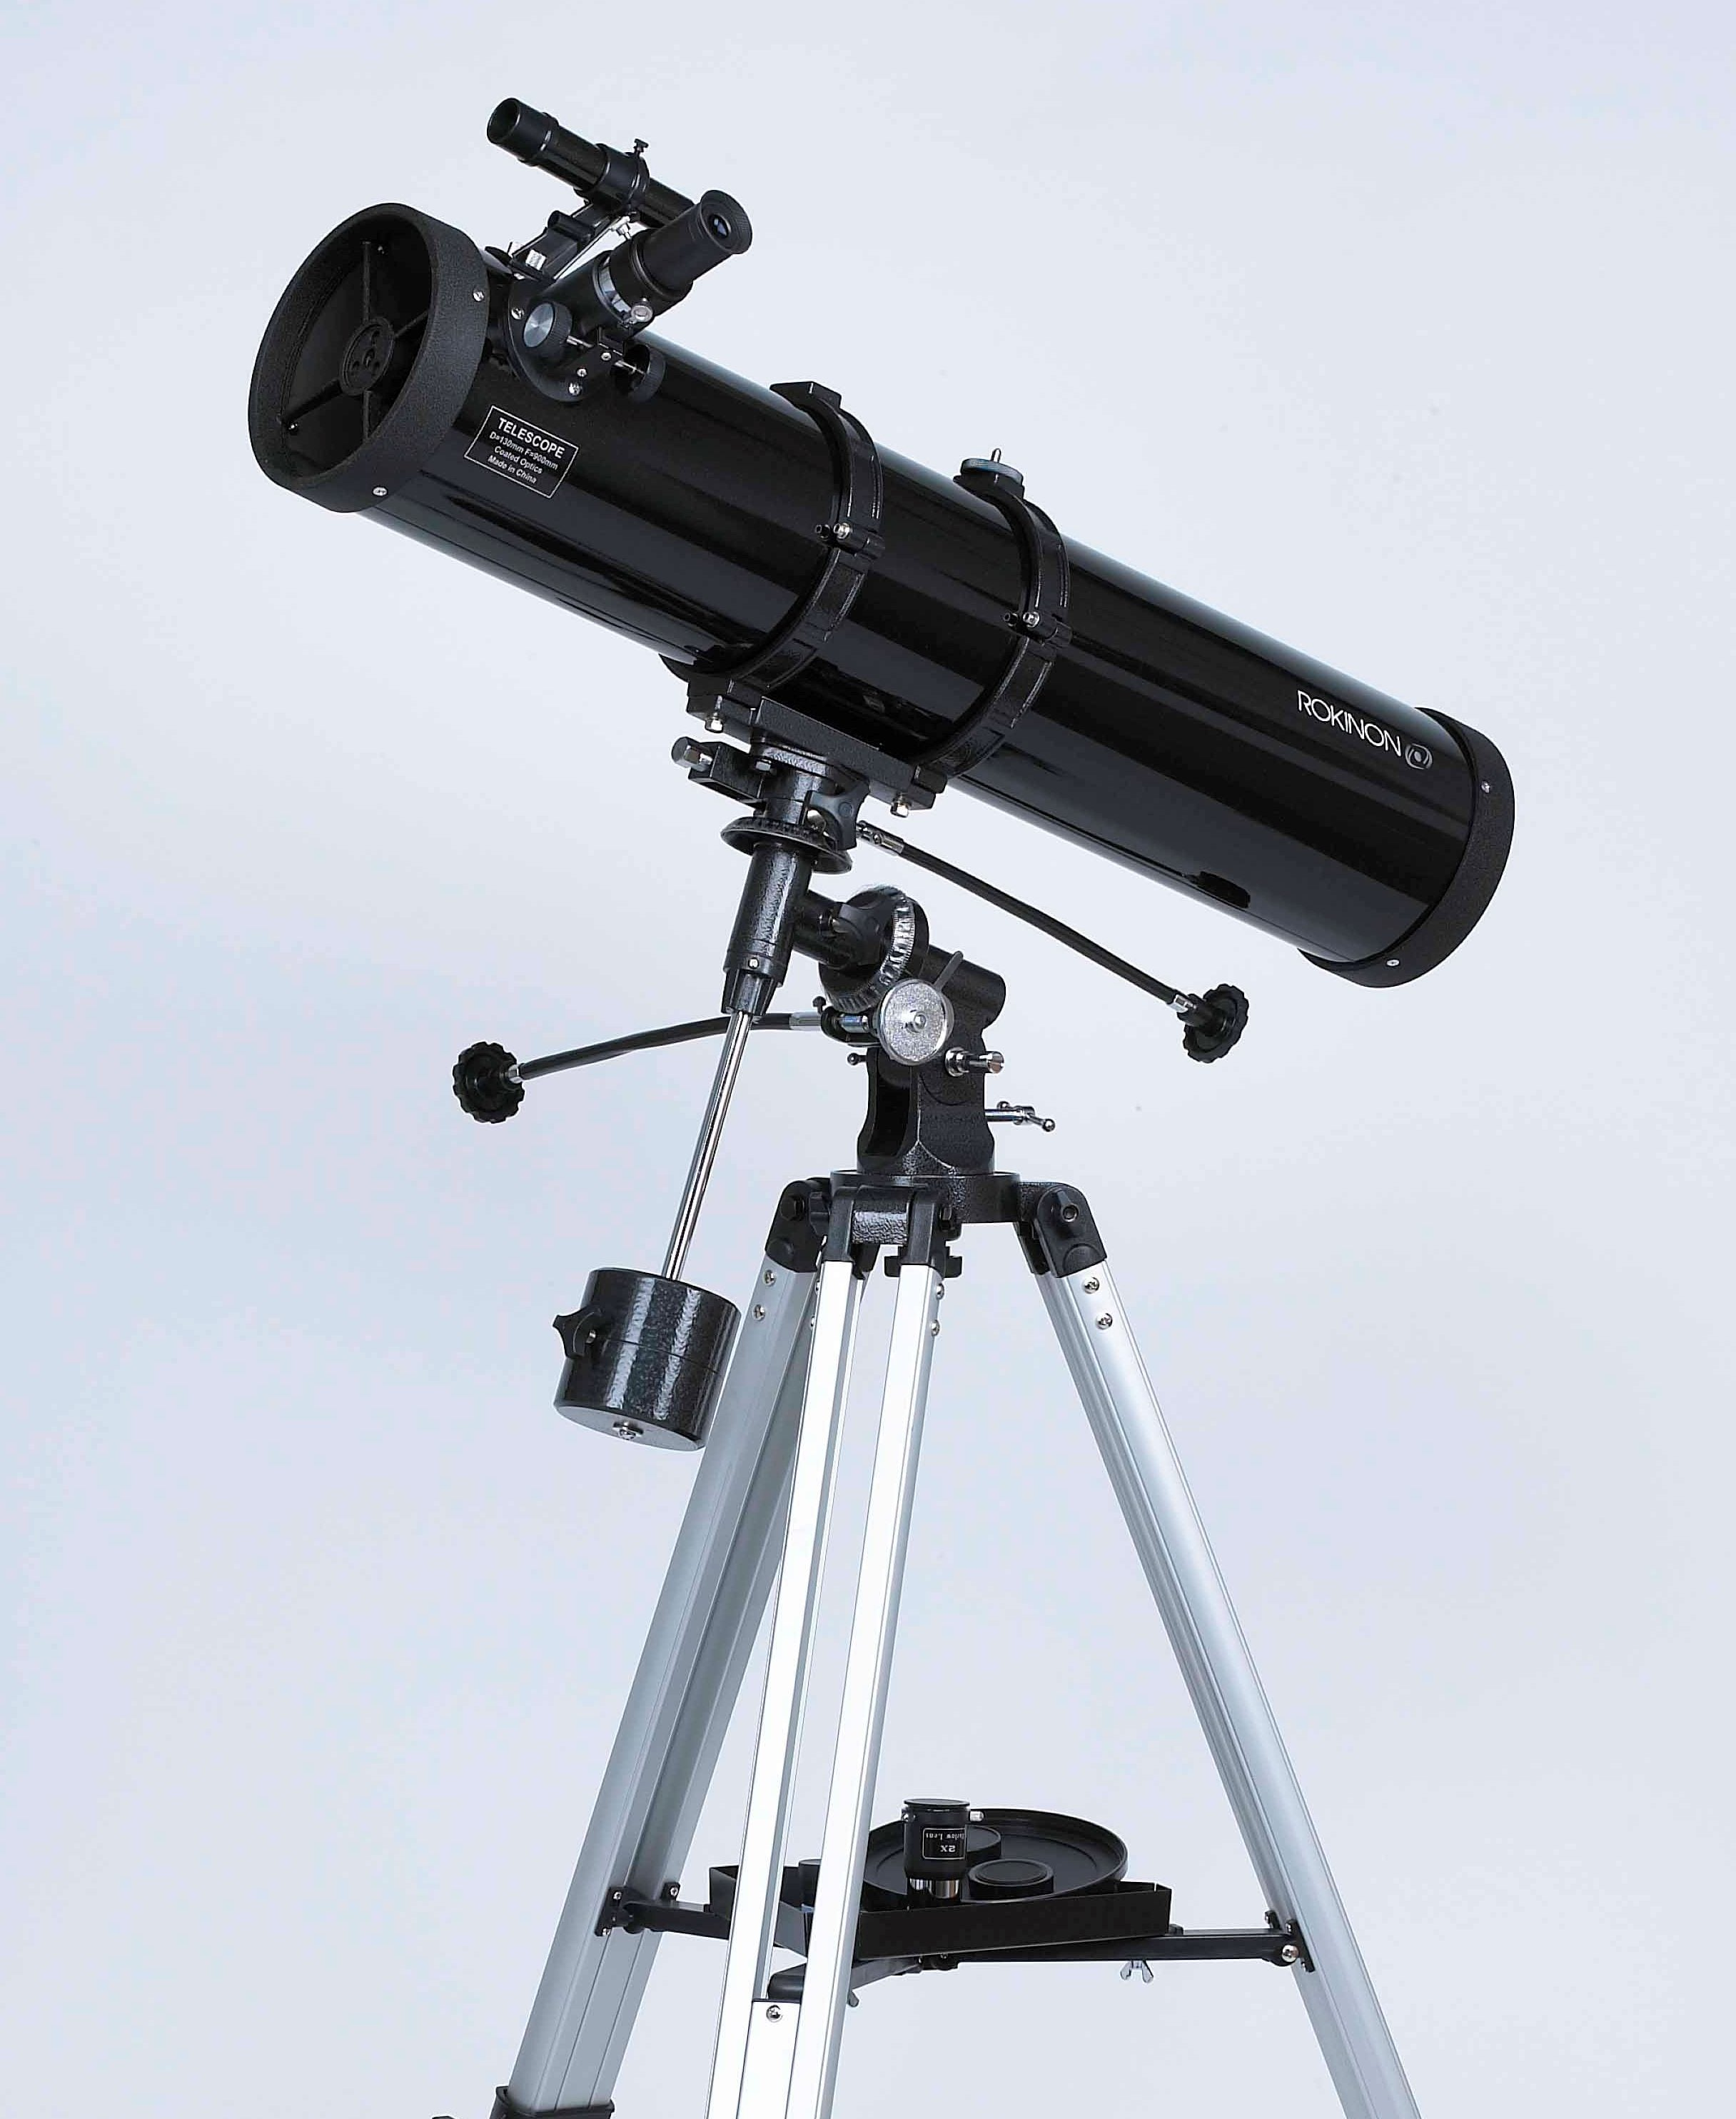 Rokinon 900-mm x 130-mm Reflector Telescope